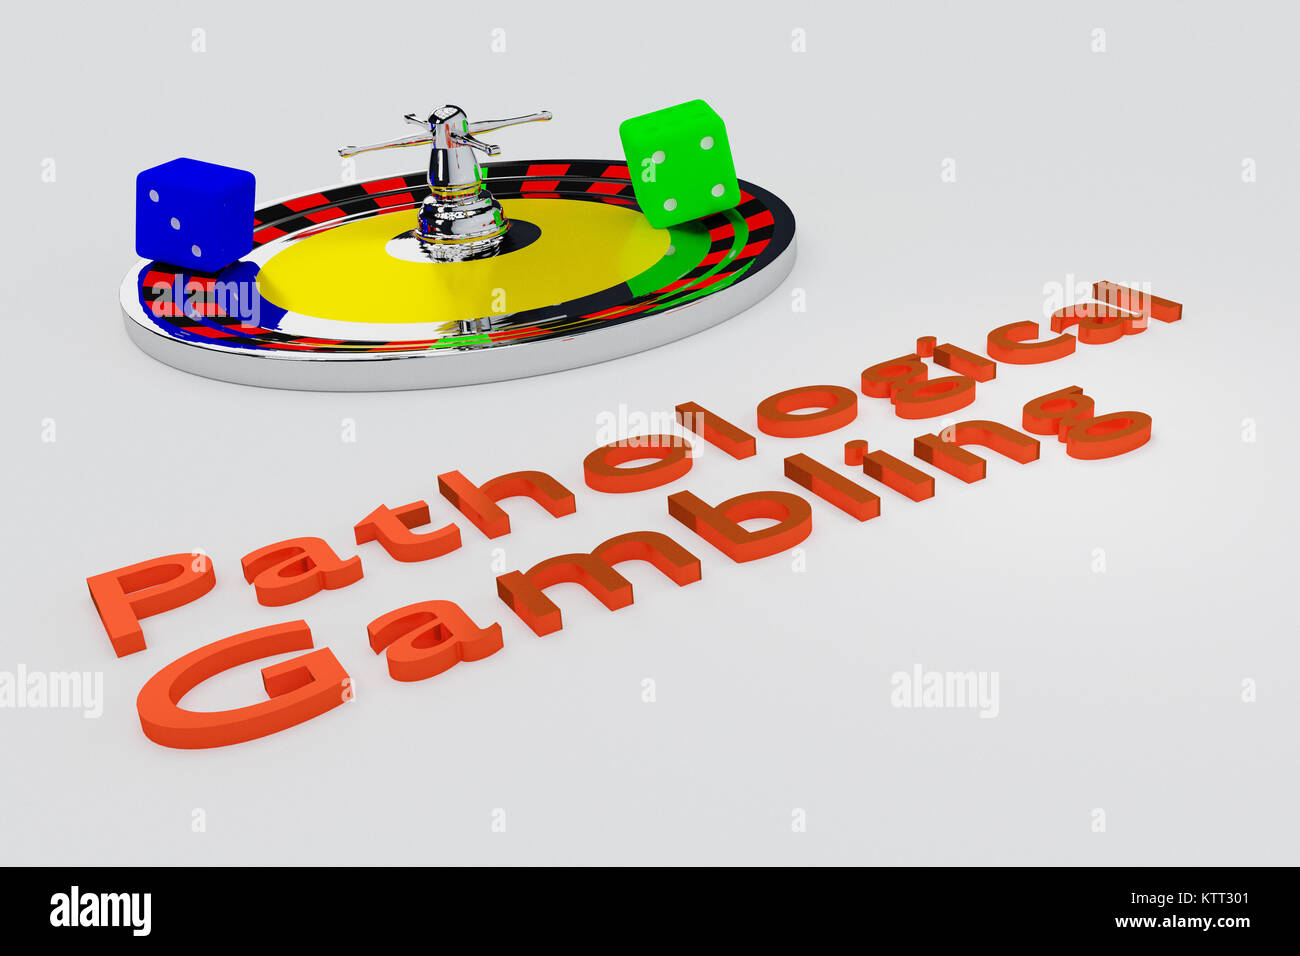 3D illustration of Pathological Gambling title written in embossed letters, with two dice. - Stock Image